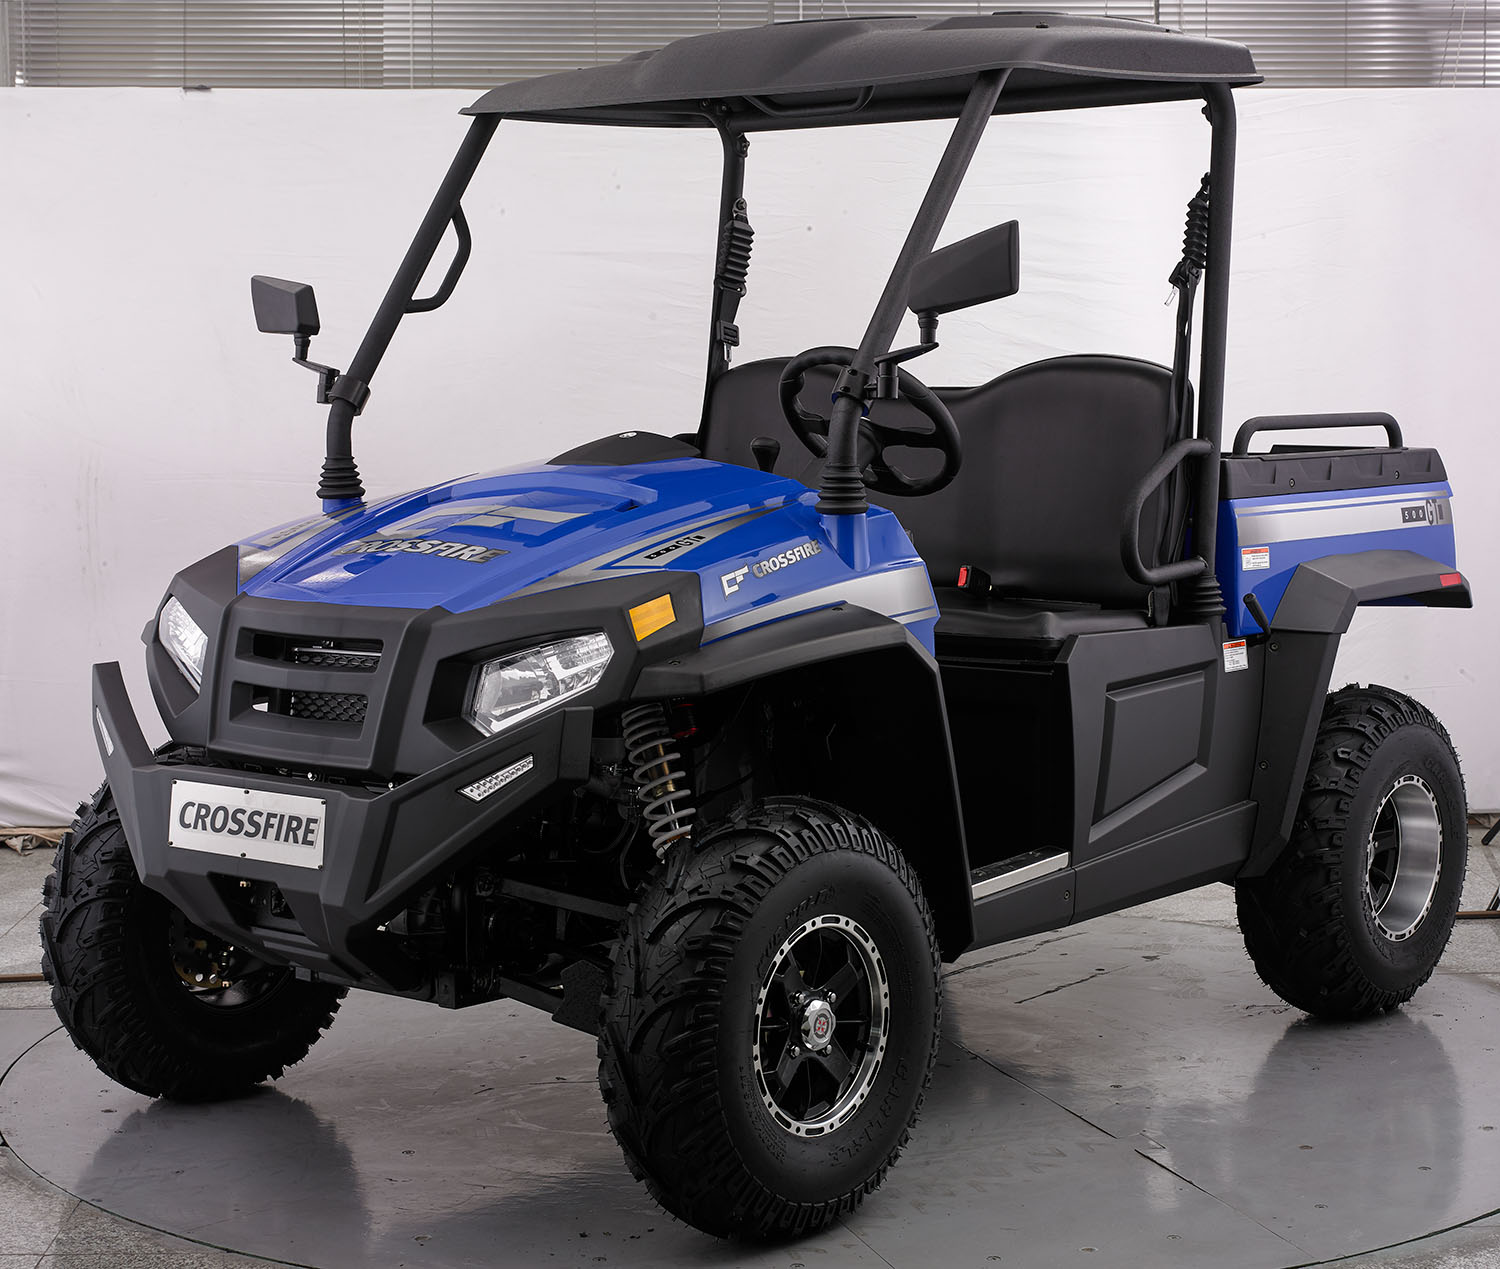 crossfire-500gt-atv-blue-front-side-1